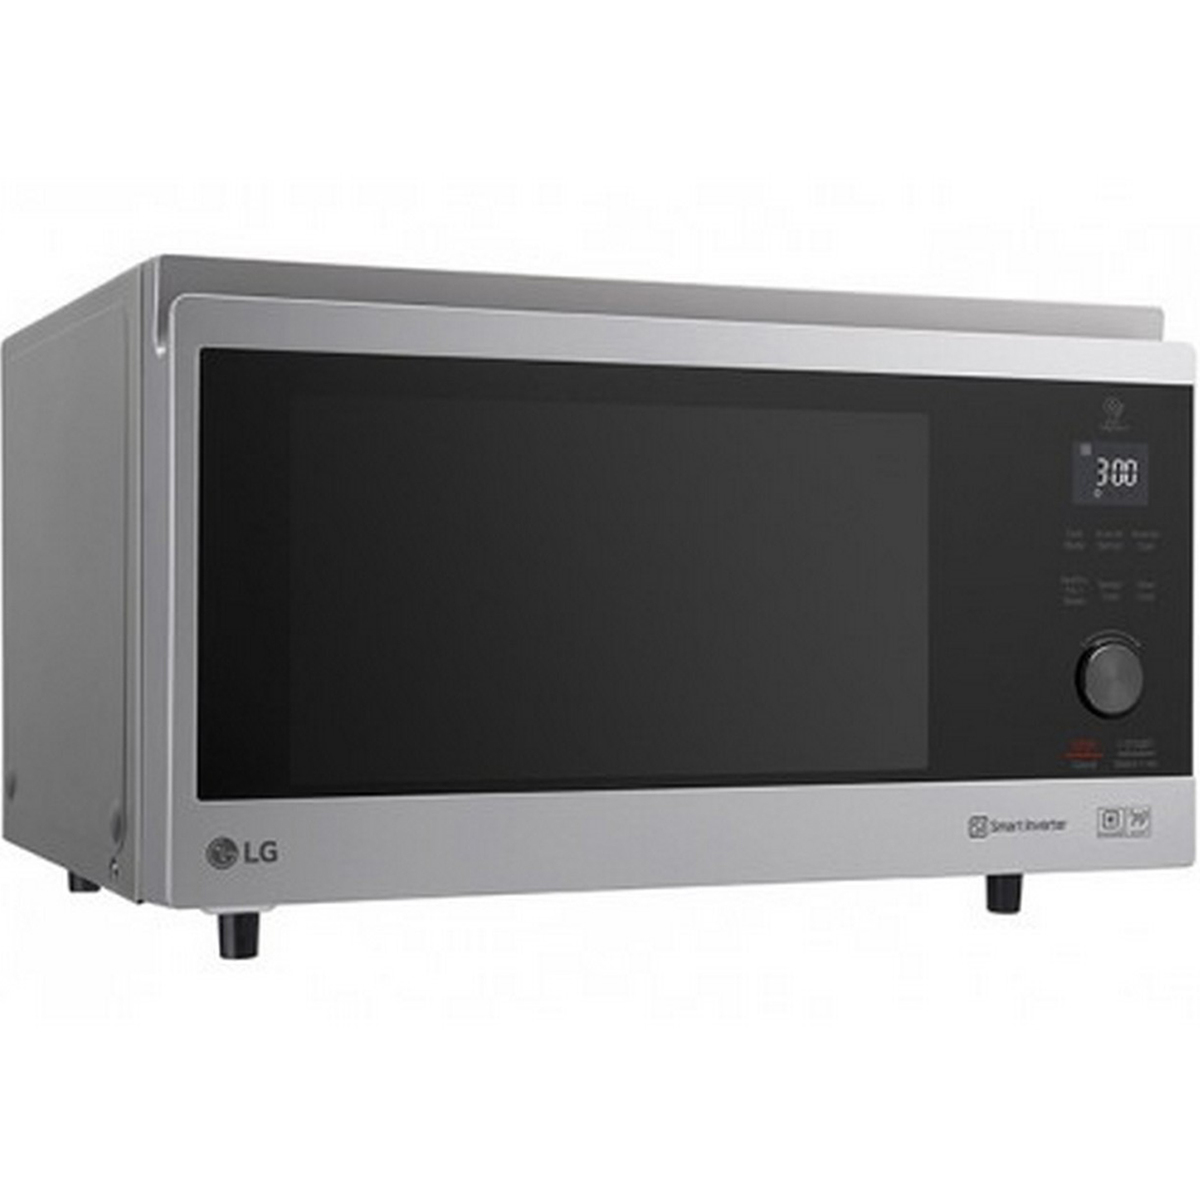 Lg Microwave Oven With Grill Mj3965acs 39ltr Mini